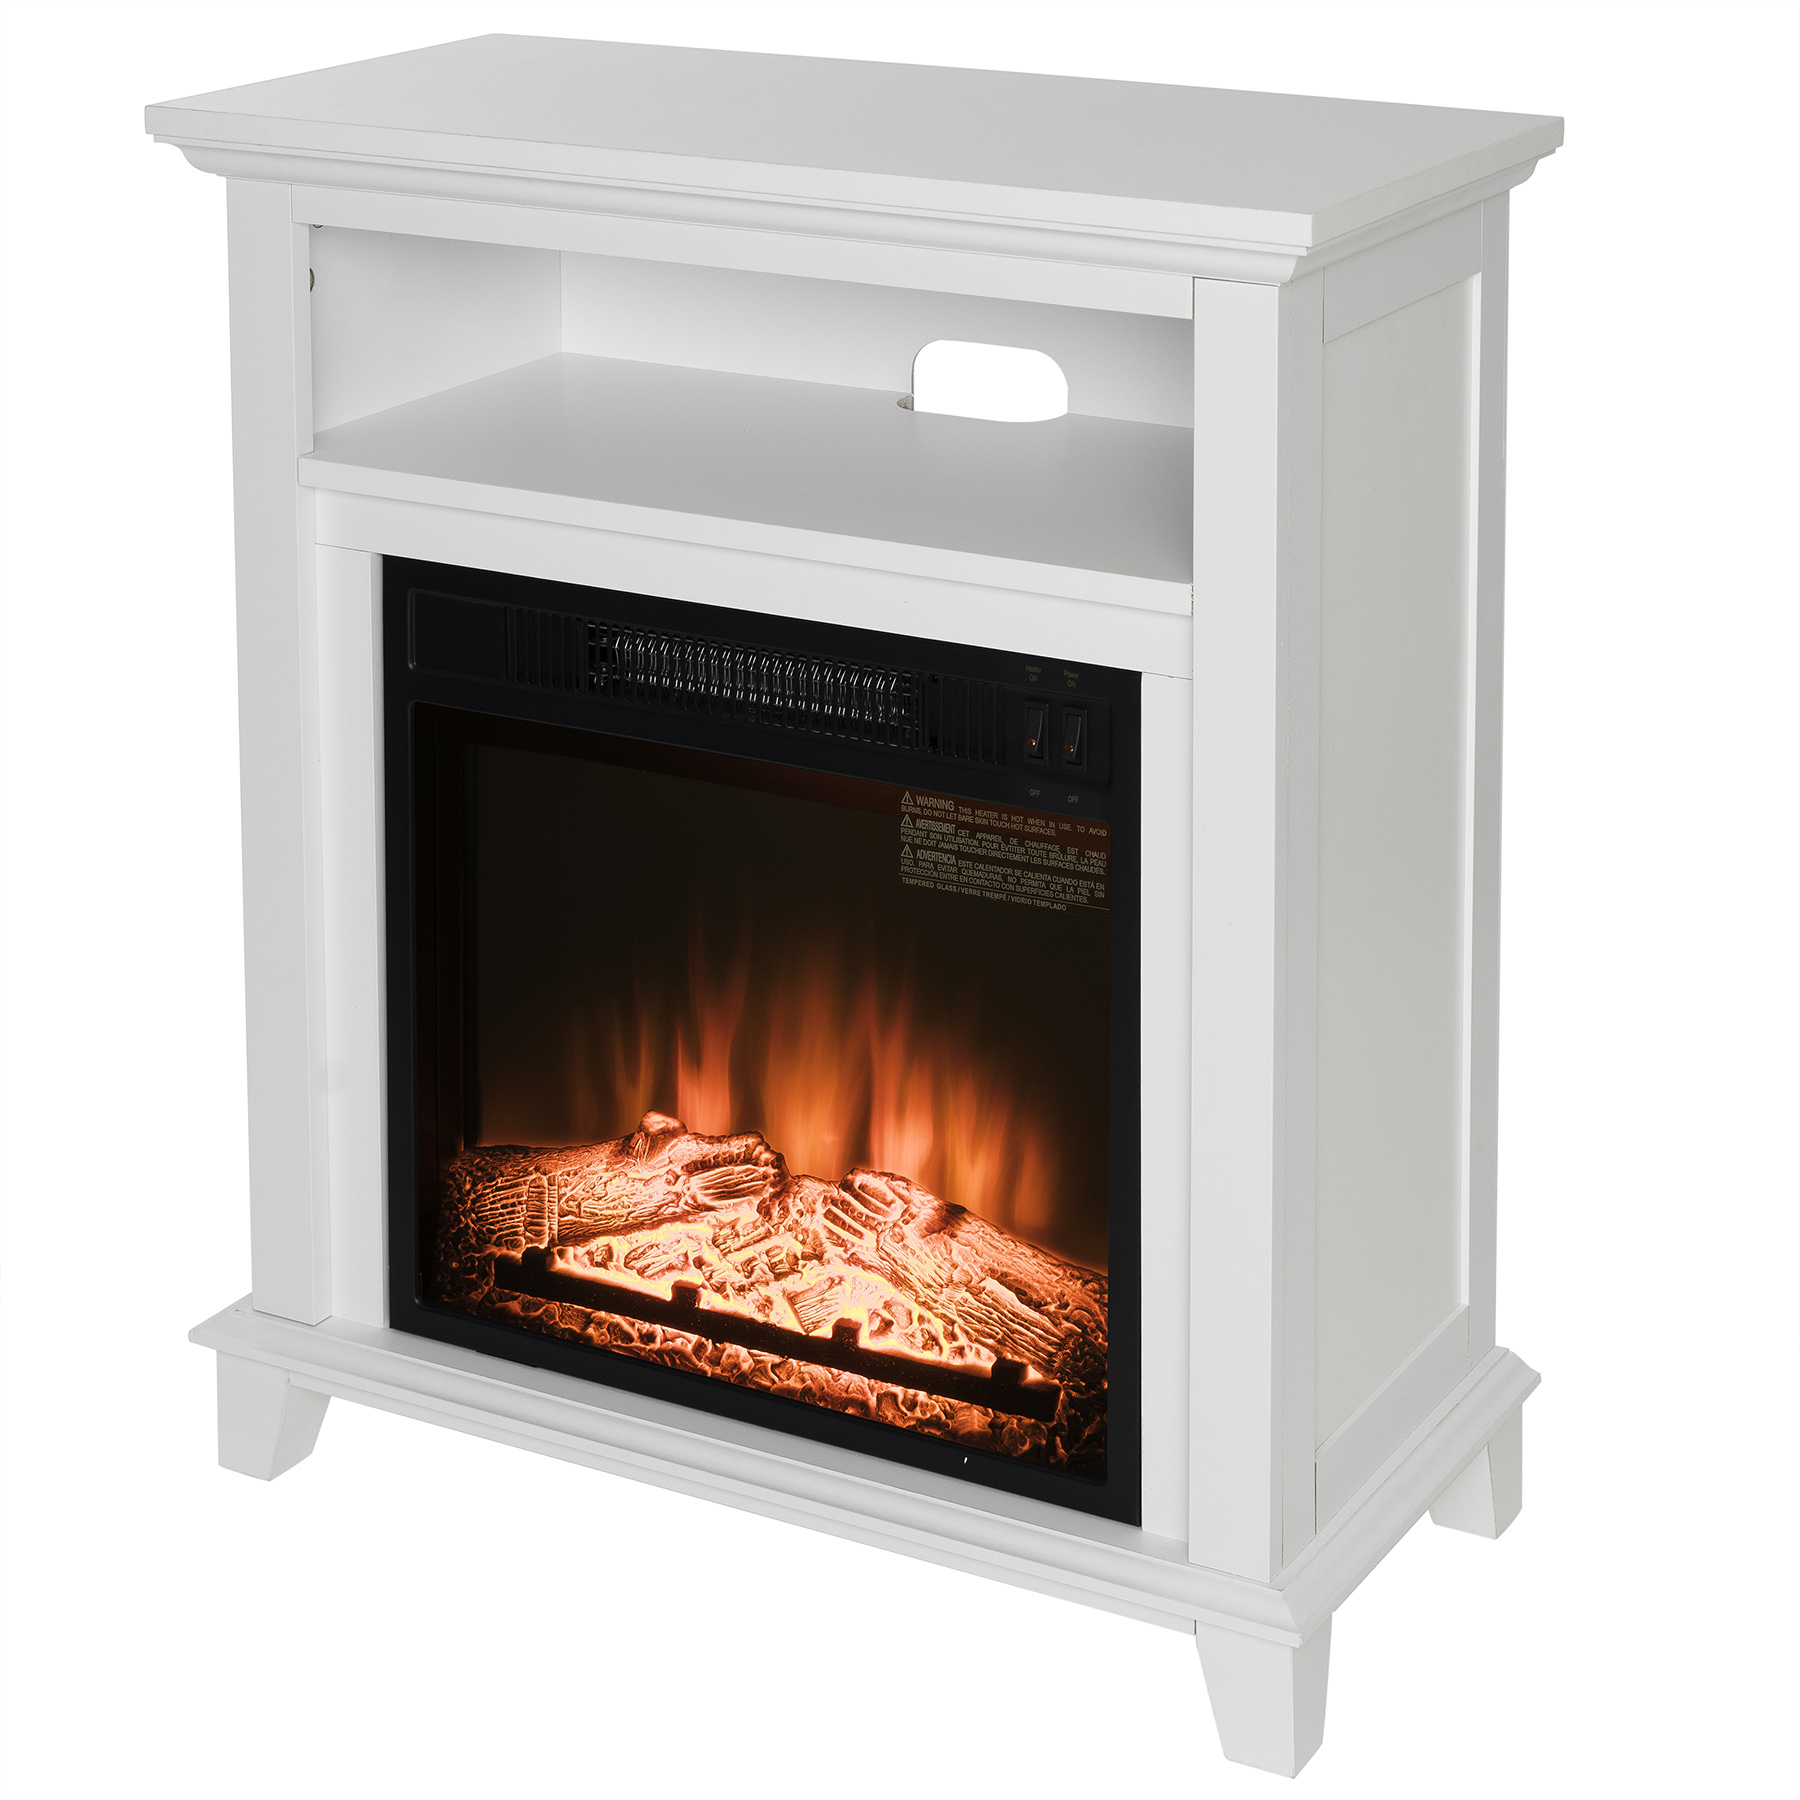 "AKDY FP0092 27"" Electric Fireplace Freestanding White Wooden Mantel Shelf Firebox Heater 3D Flame w/ Logs"